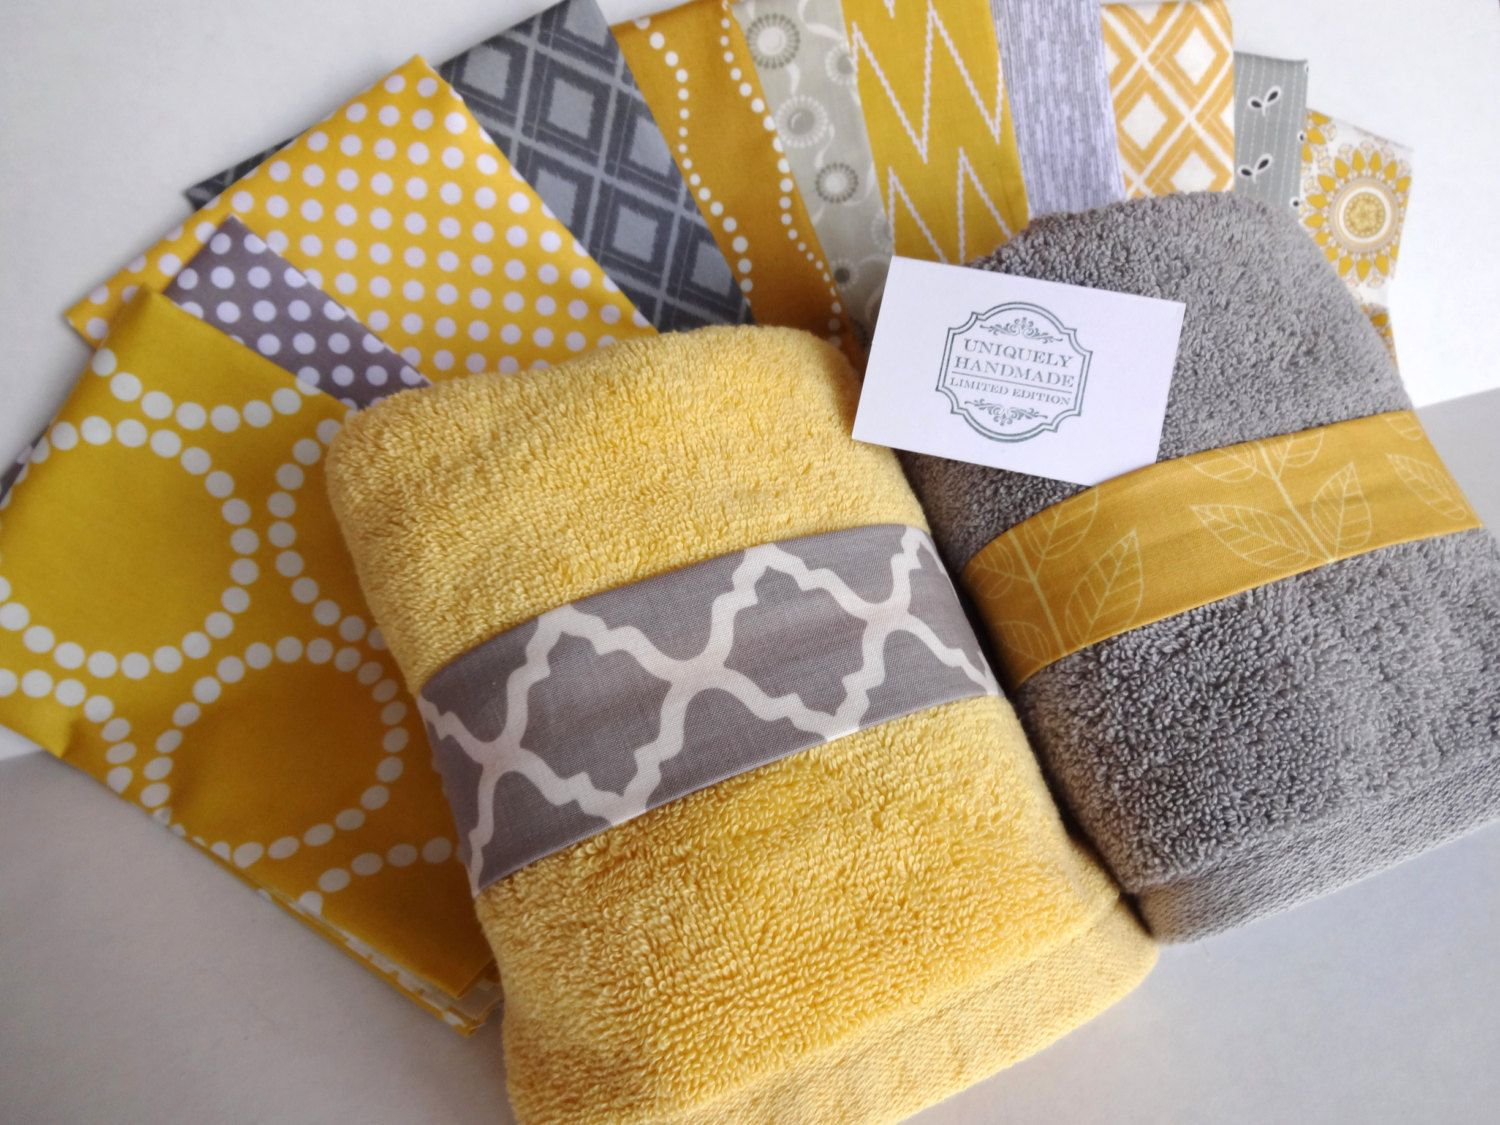 A Picture From The Gallery Yellow Bathroom Accessories To - Gray bathroom rug sets for bathroom decor ideas